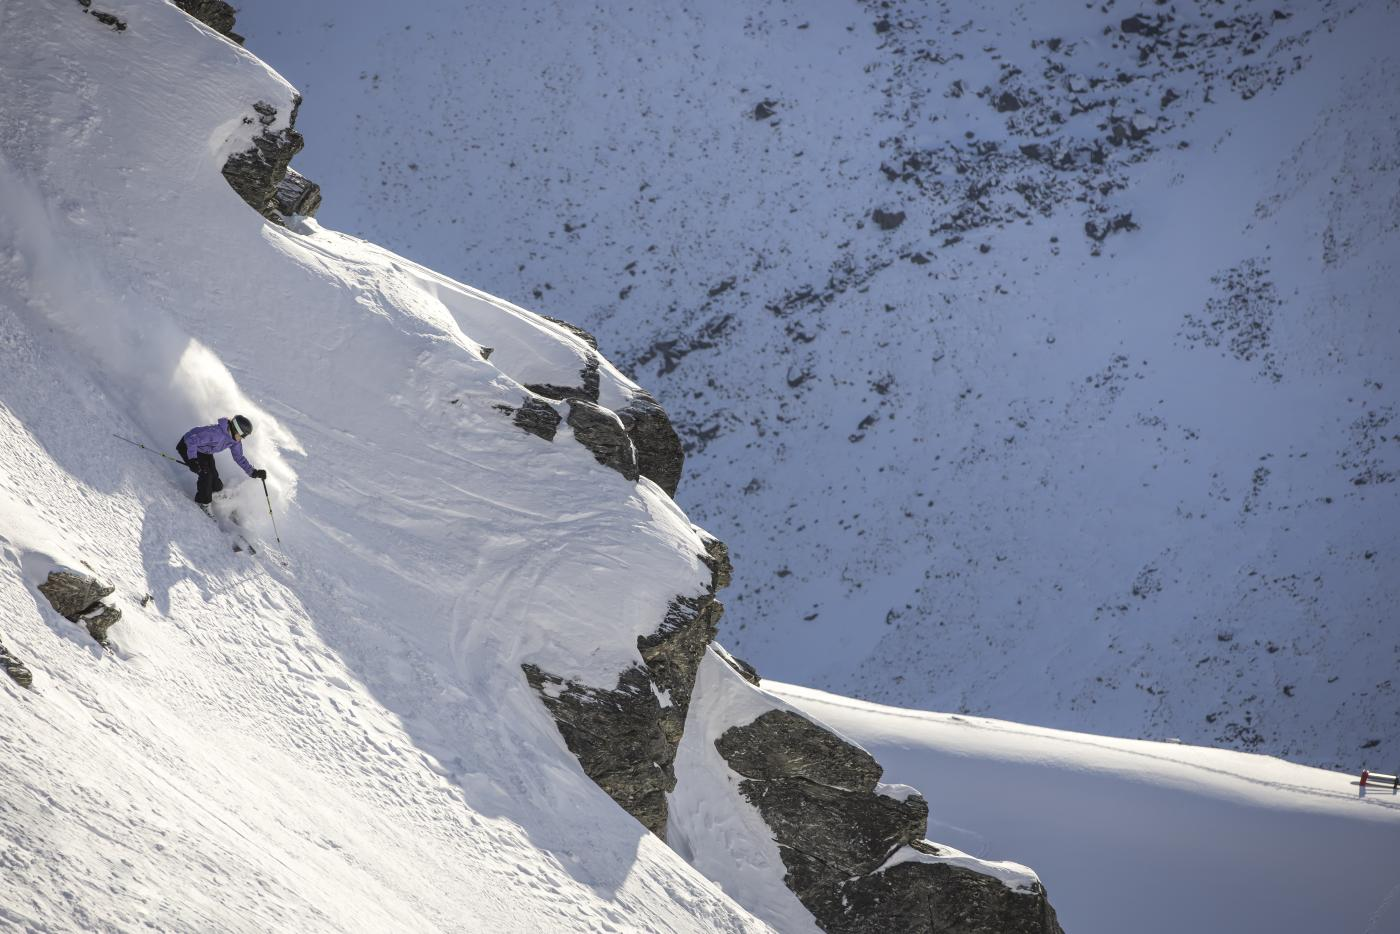 Skiing The Remarkables